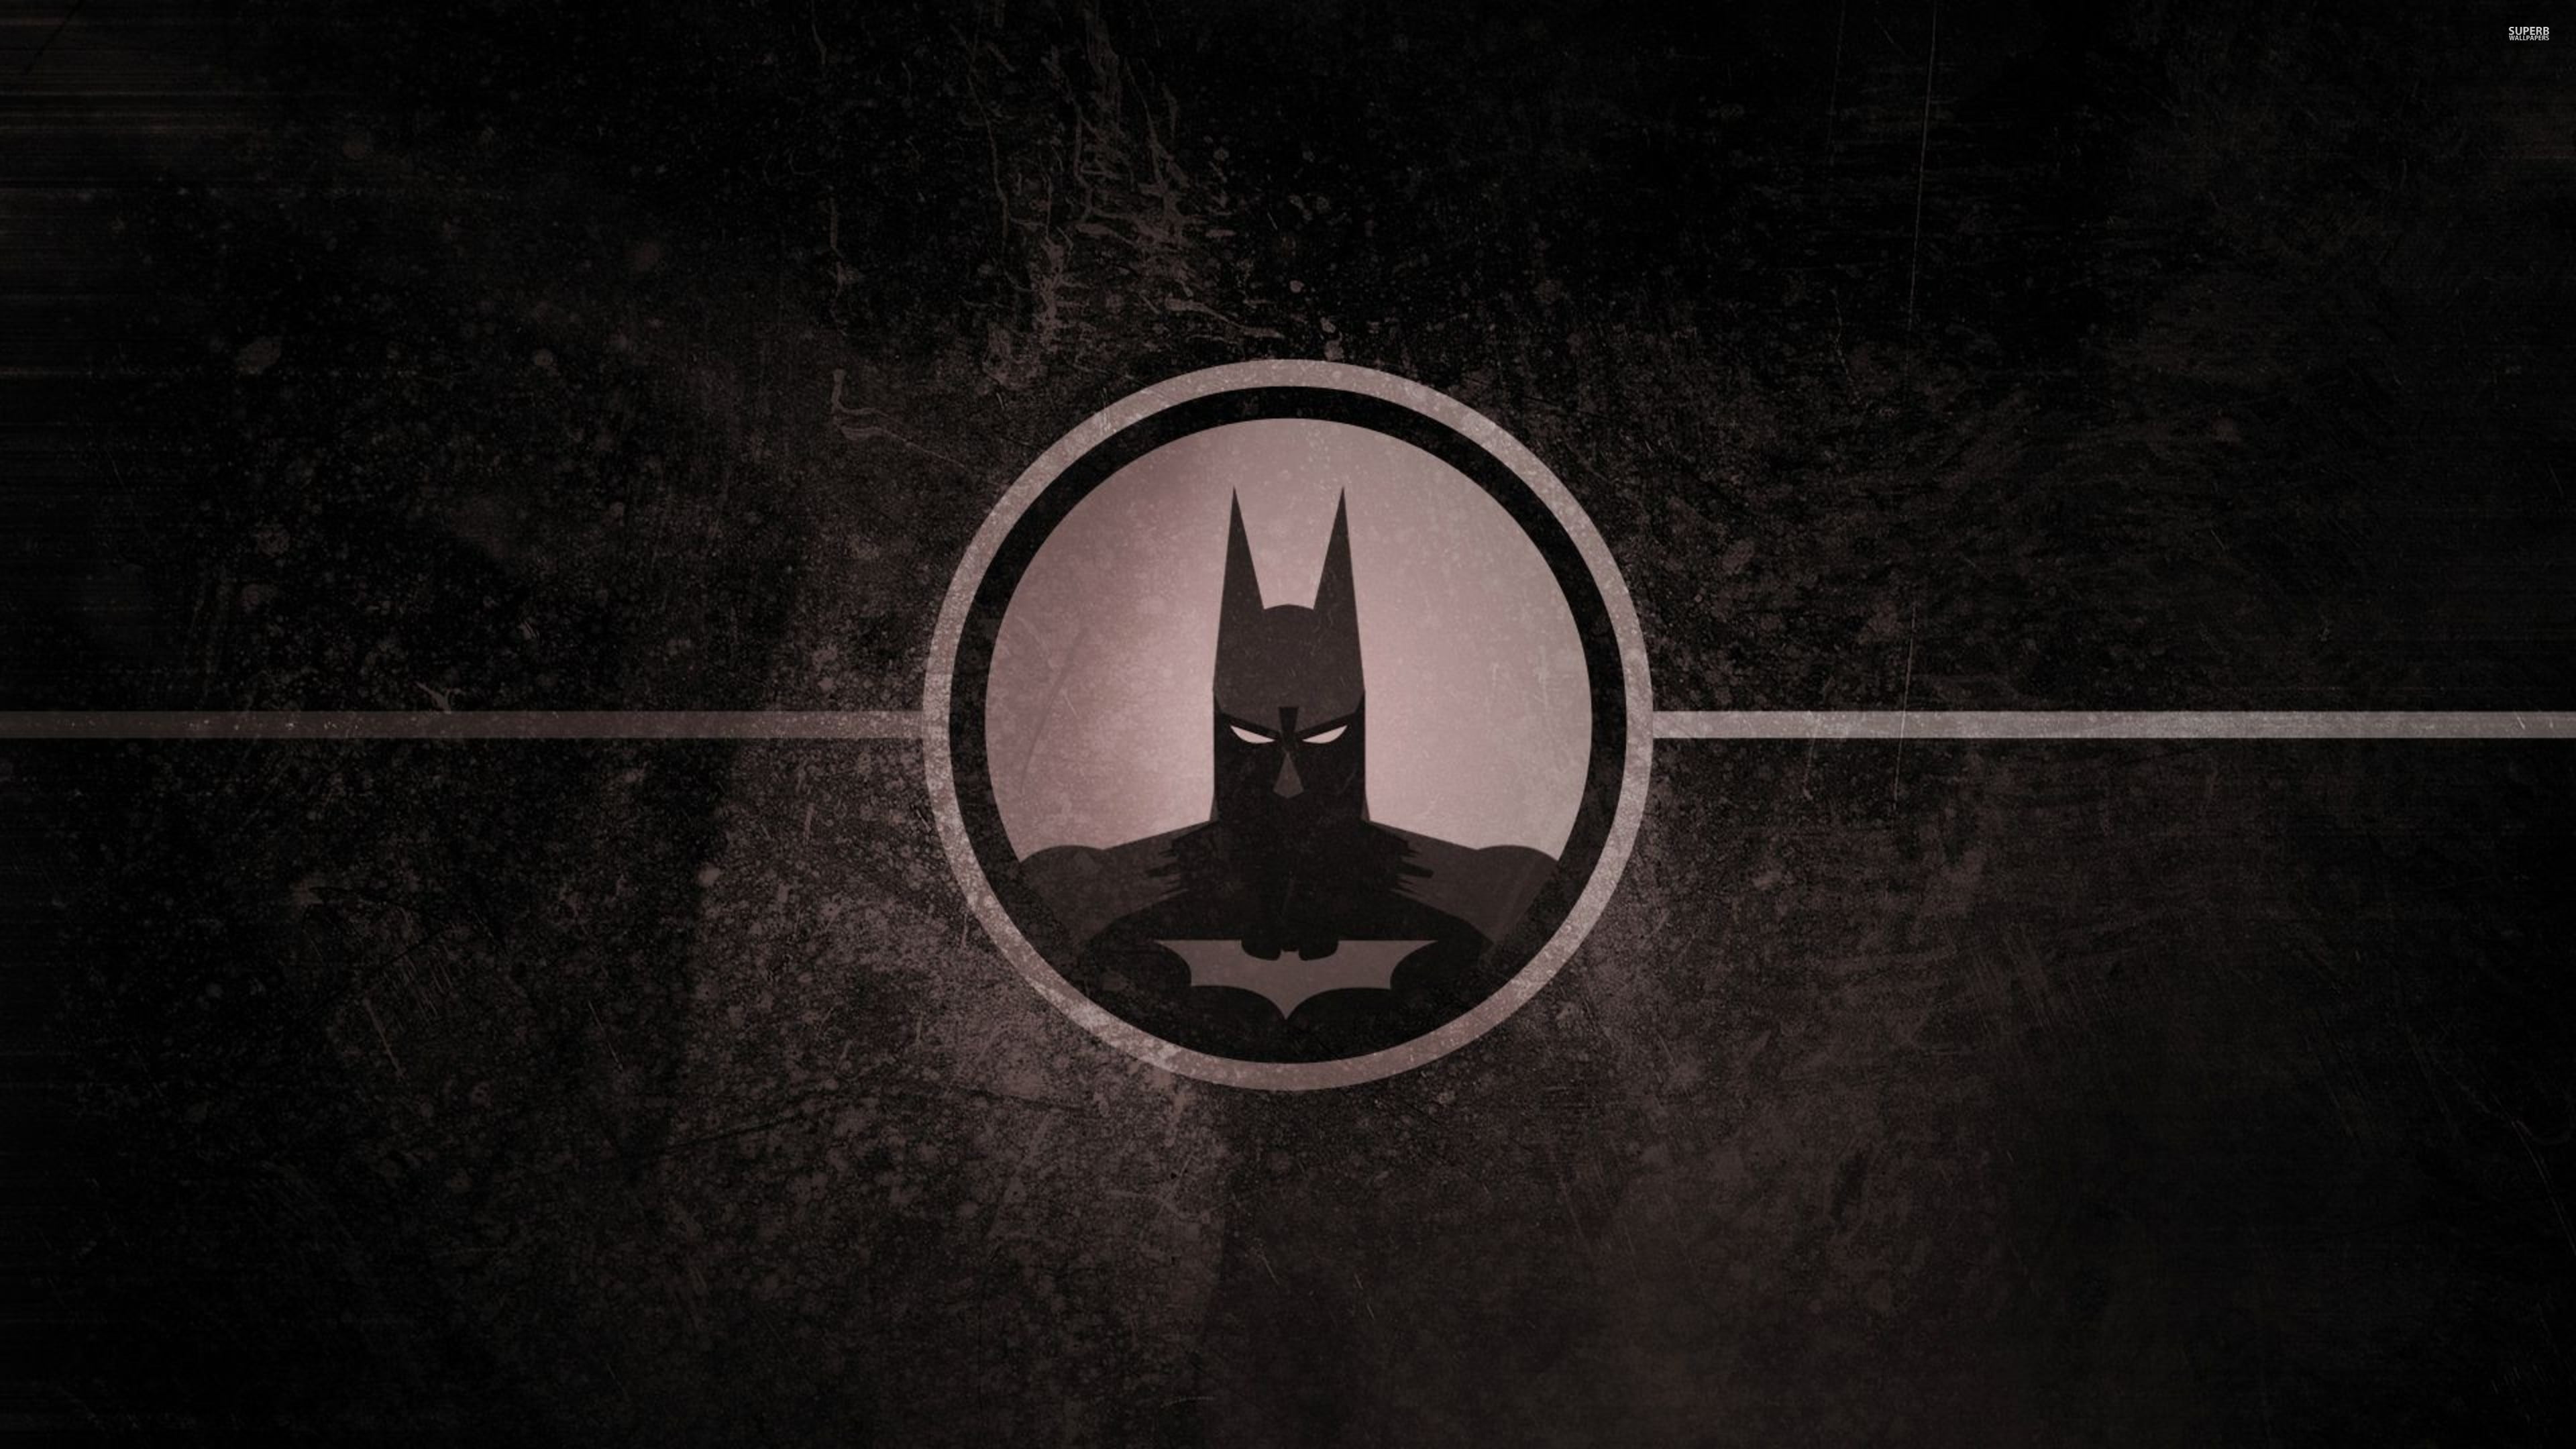 Iphone 2g Wallpaper Batman Logo Hd Wallpaper Wallpaper Flare